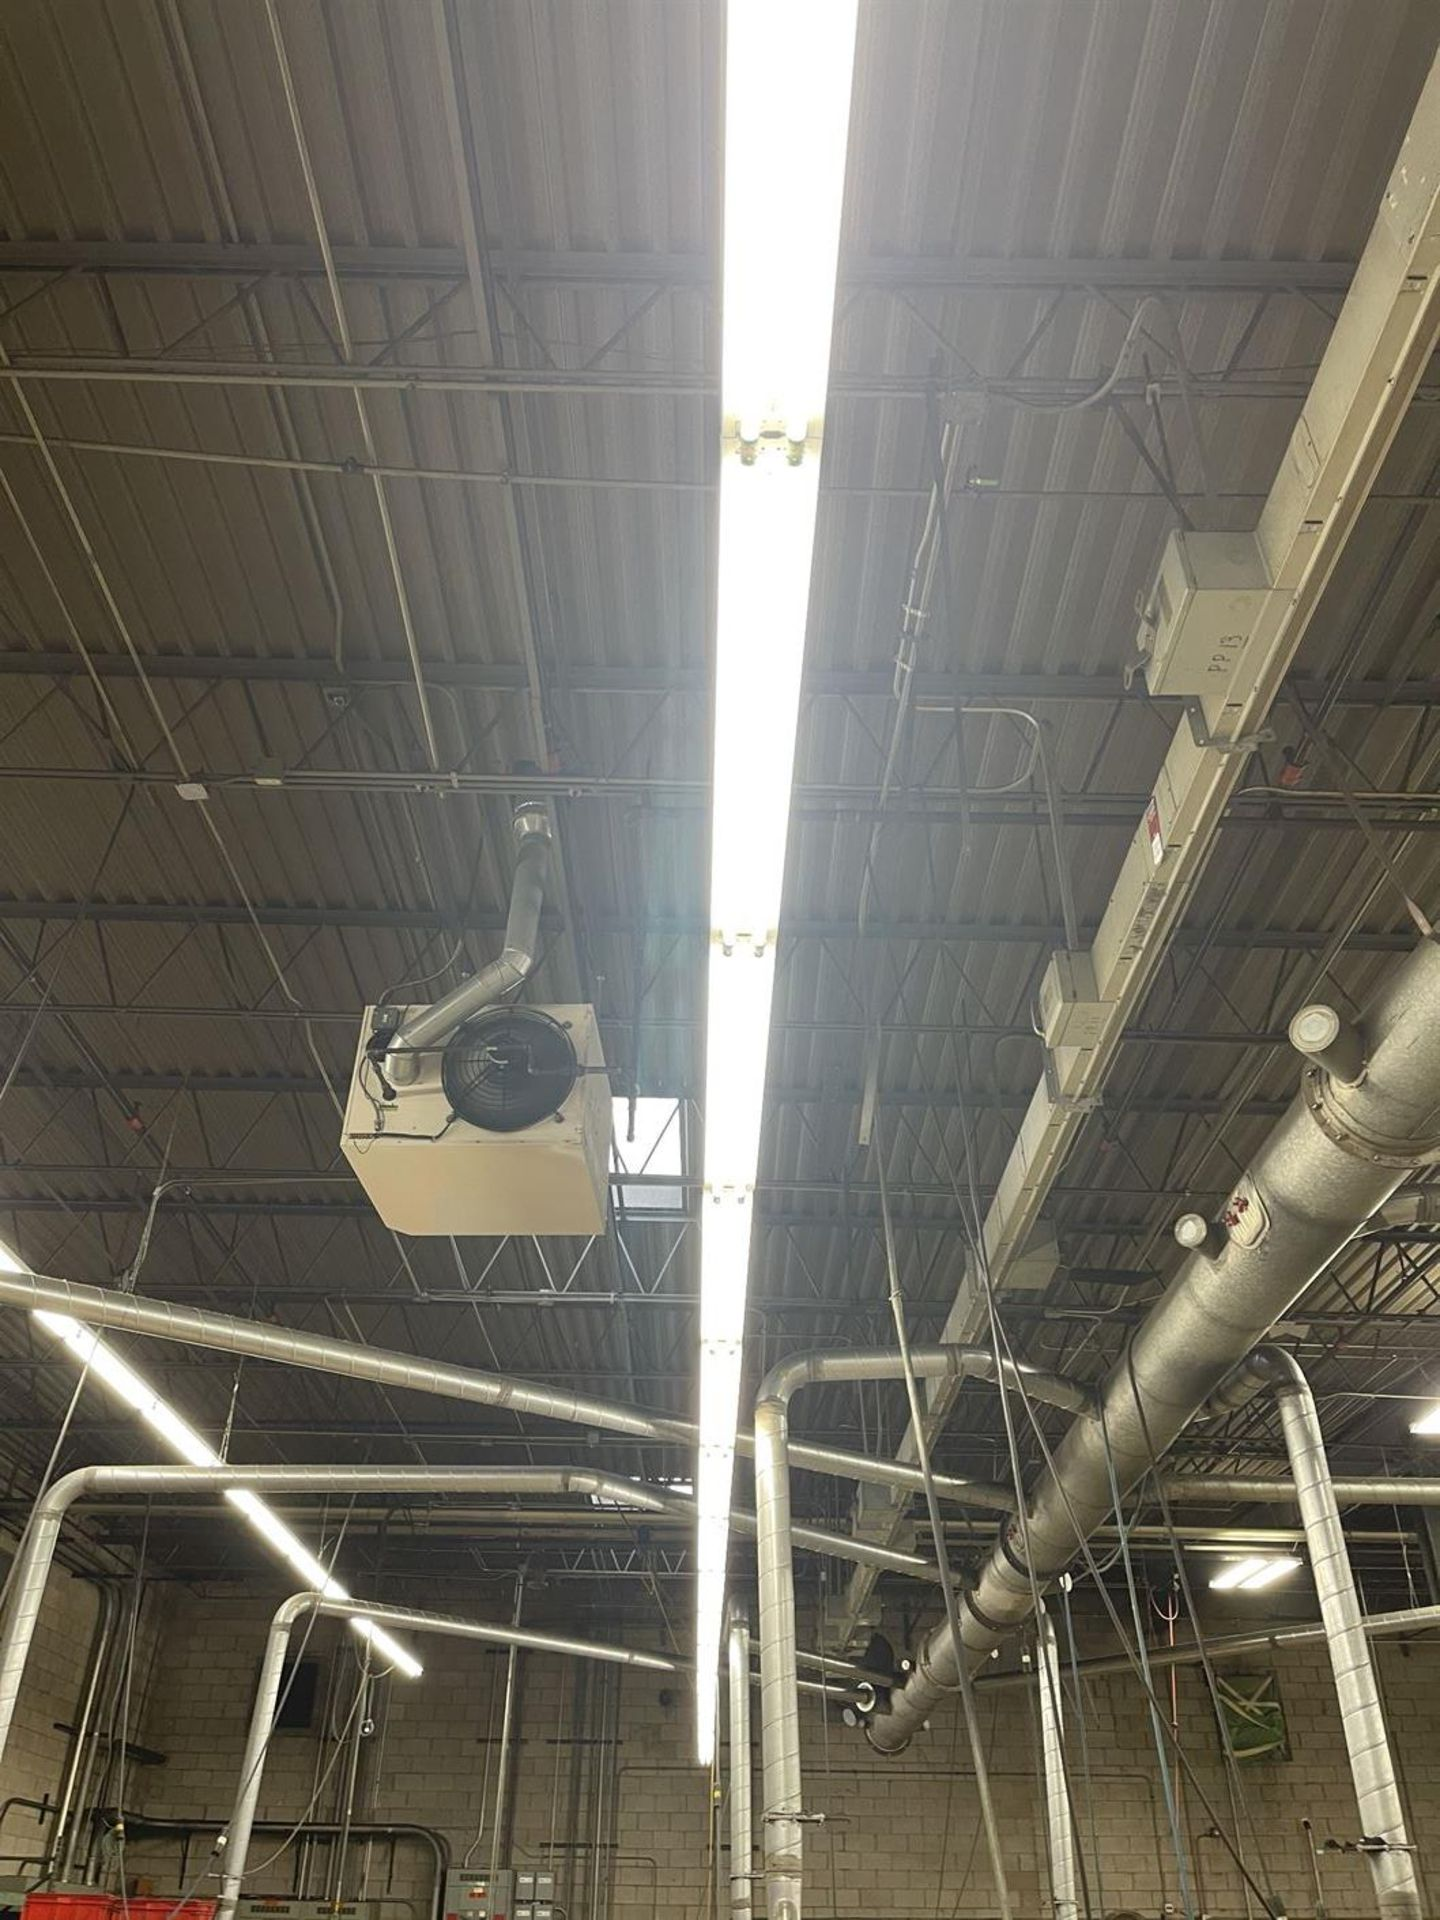 Row of Shop Lighting, Approx. 90' Length - Image 2 of 2